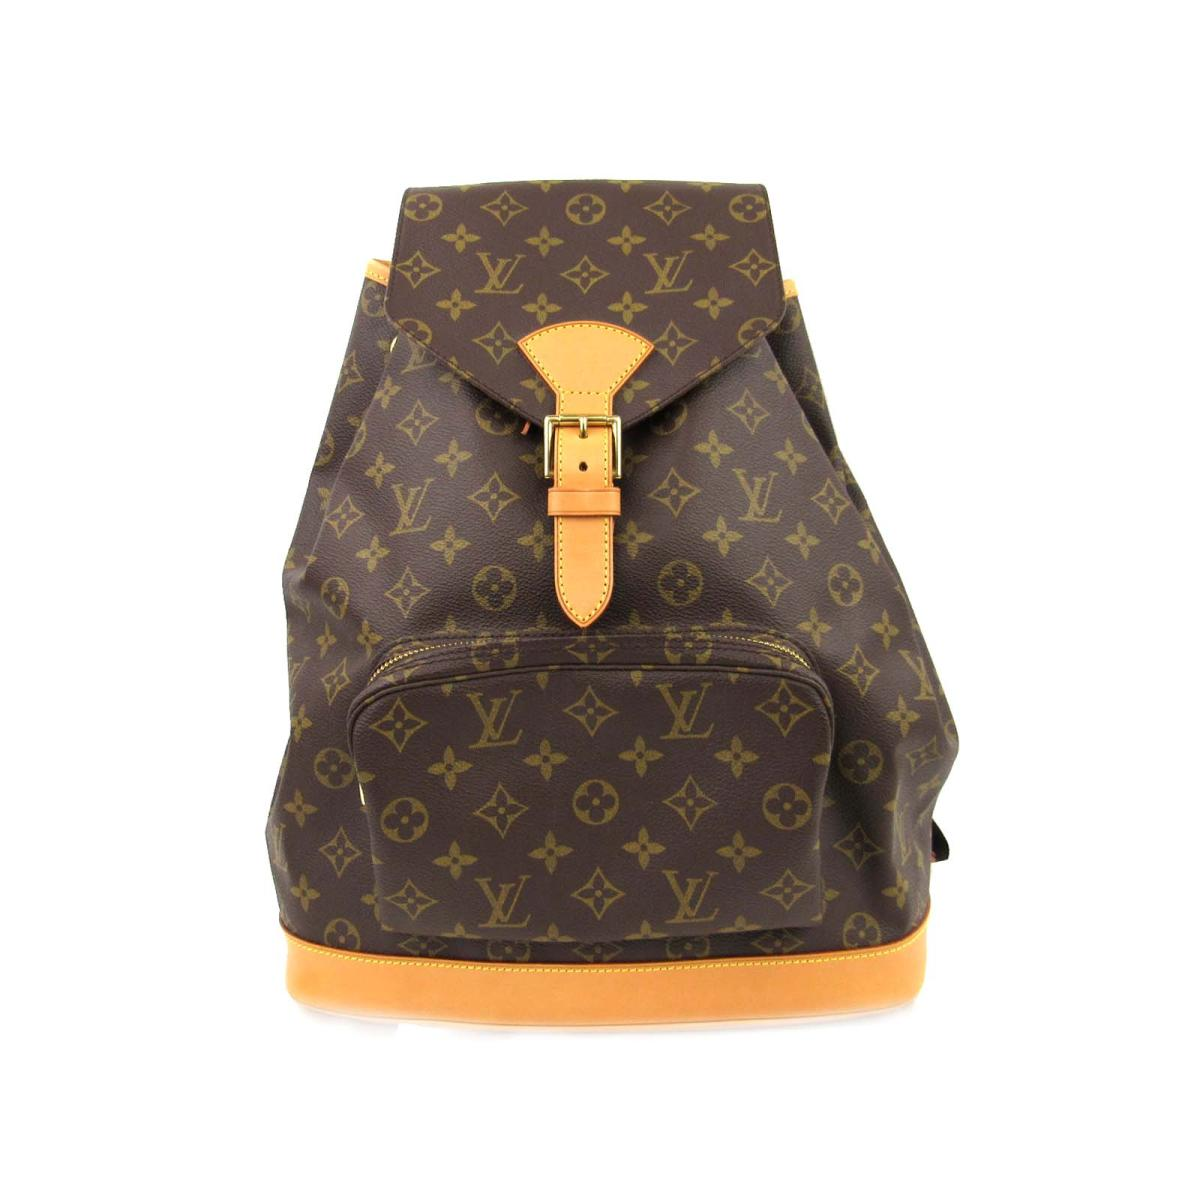 Authentic LOUIS VUITTON Montsouris GM Backpack Rucksack Bag Monogram Canvas  M51135 48170d1efc11a